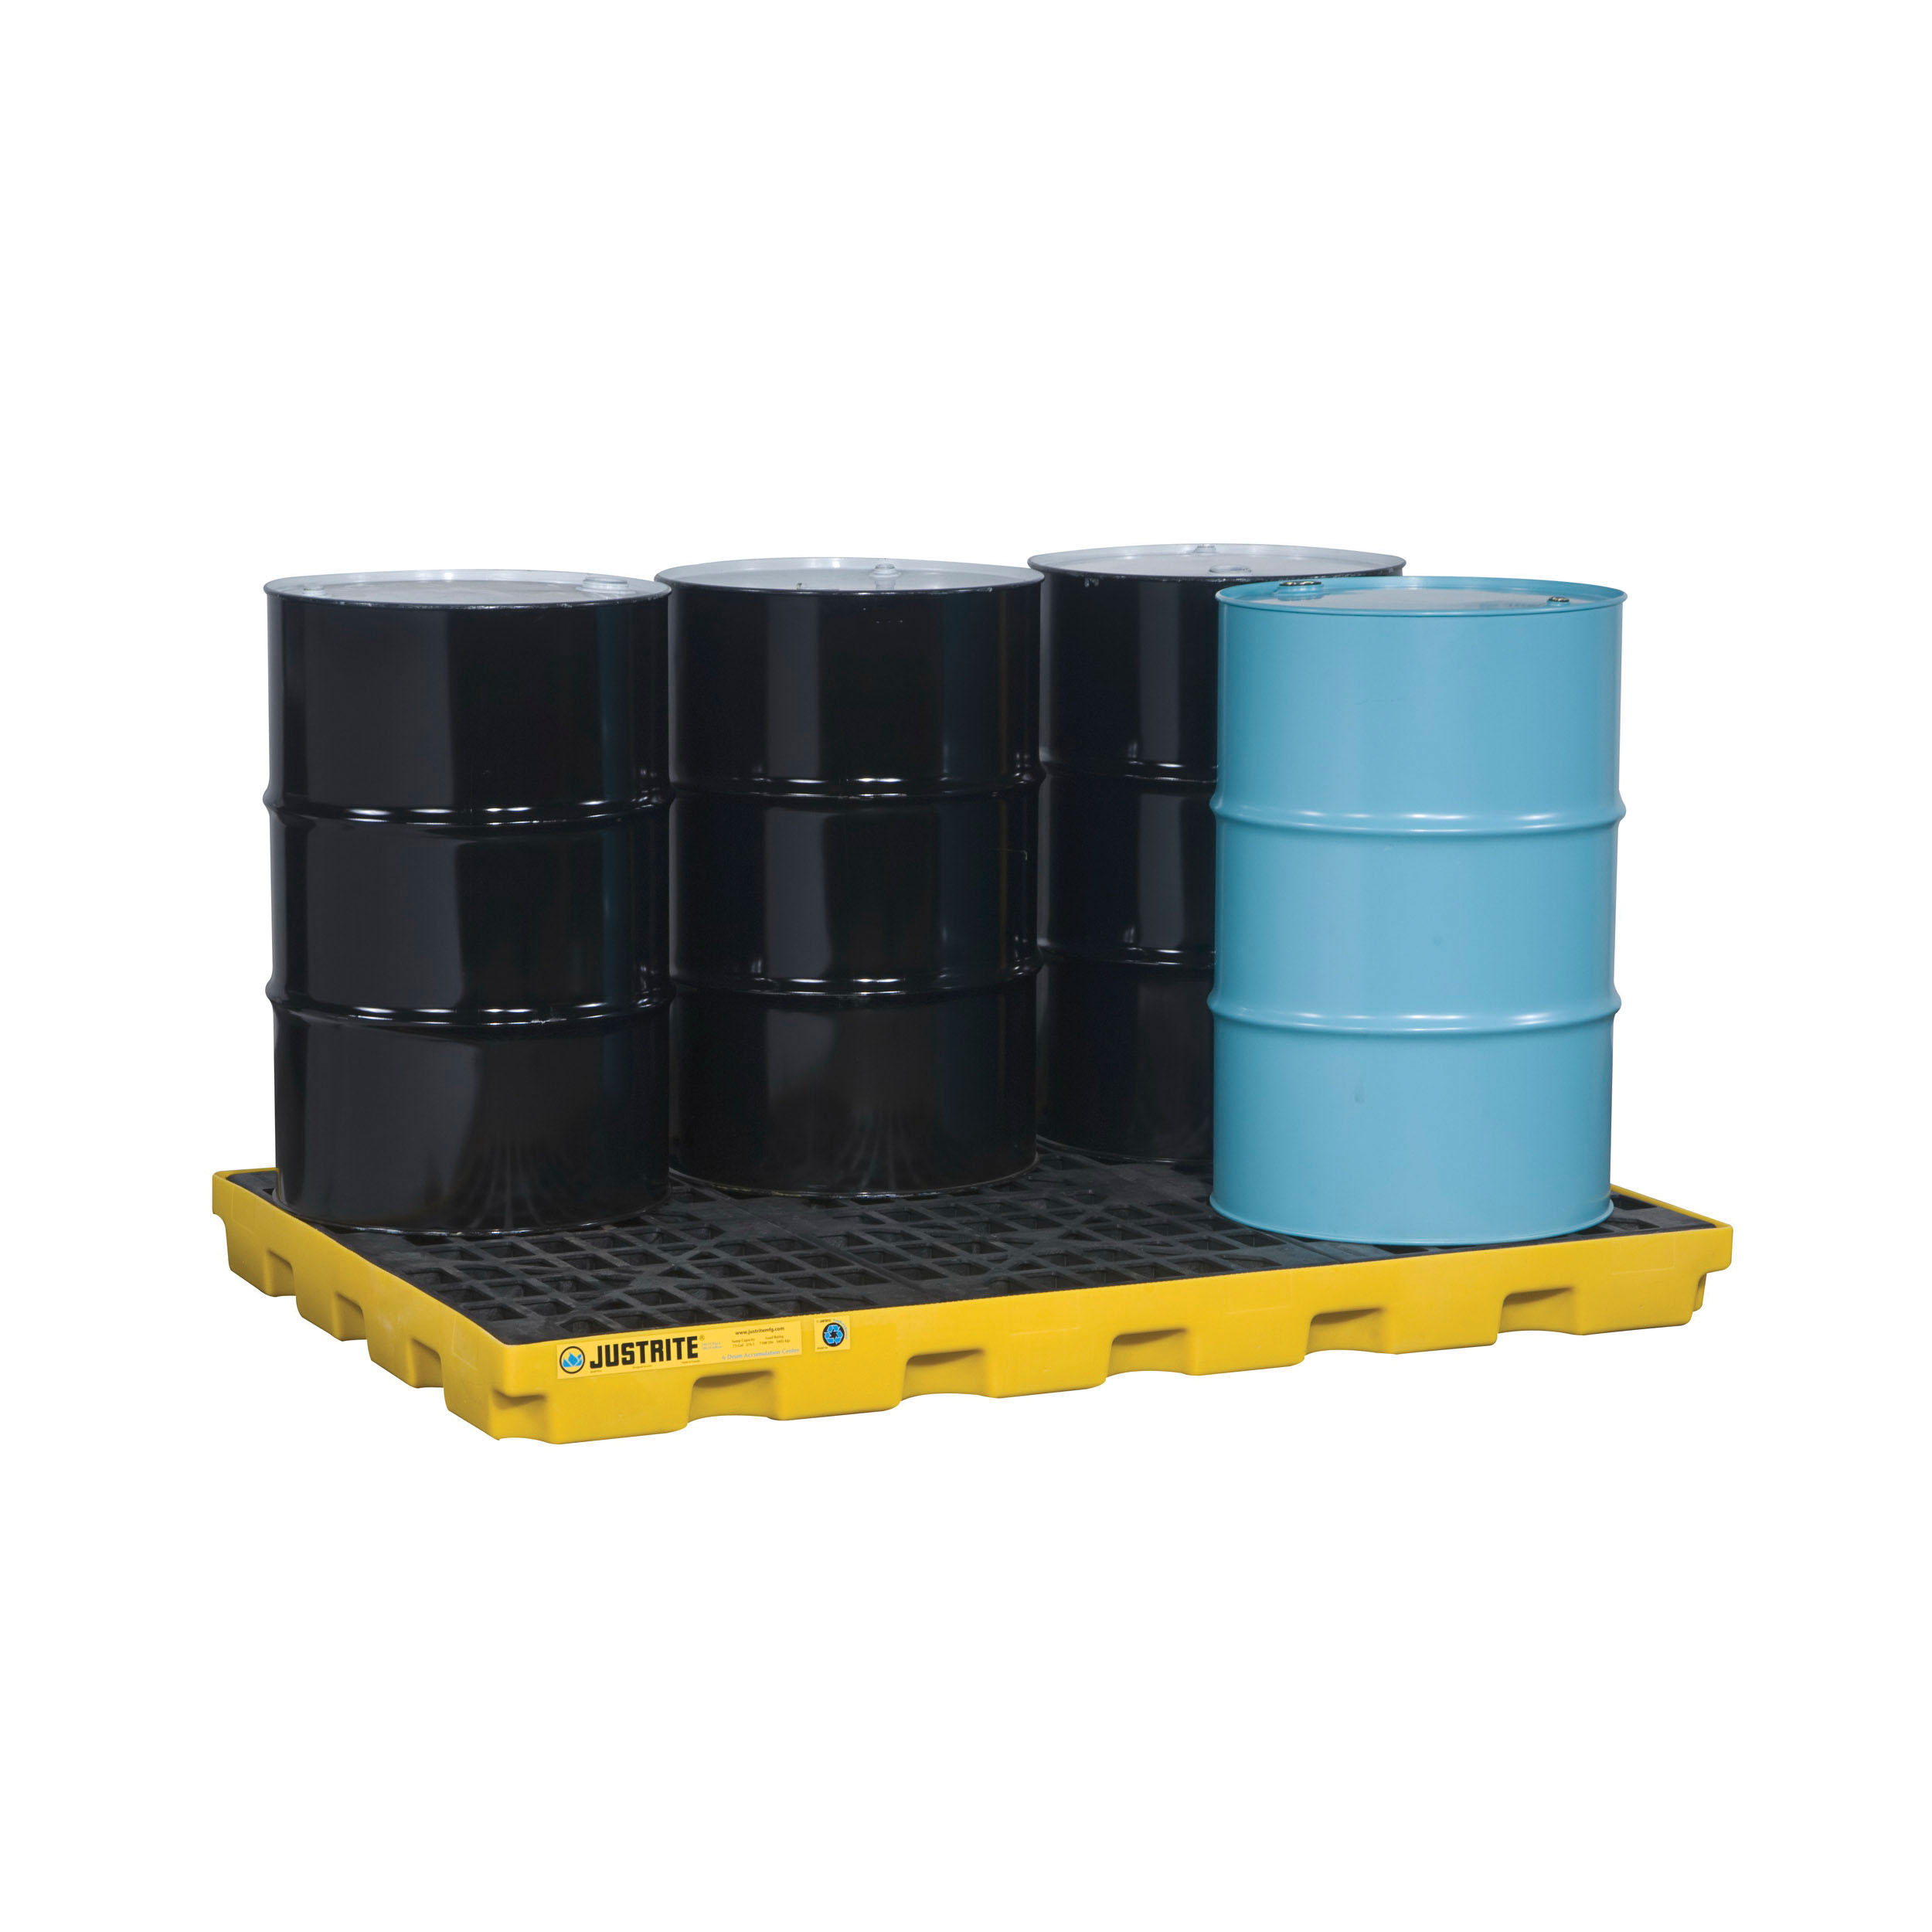 Justrite® 28658 EcoPolyBlend™ Accumulation Center, 6 Drums, 73 gal Spill, 7500 lb Load, 45% Recycled Polyethylene